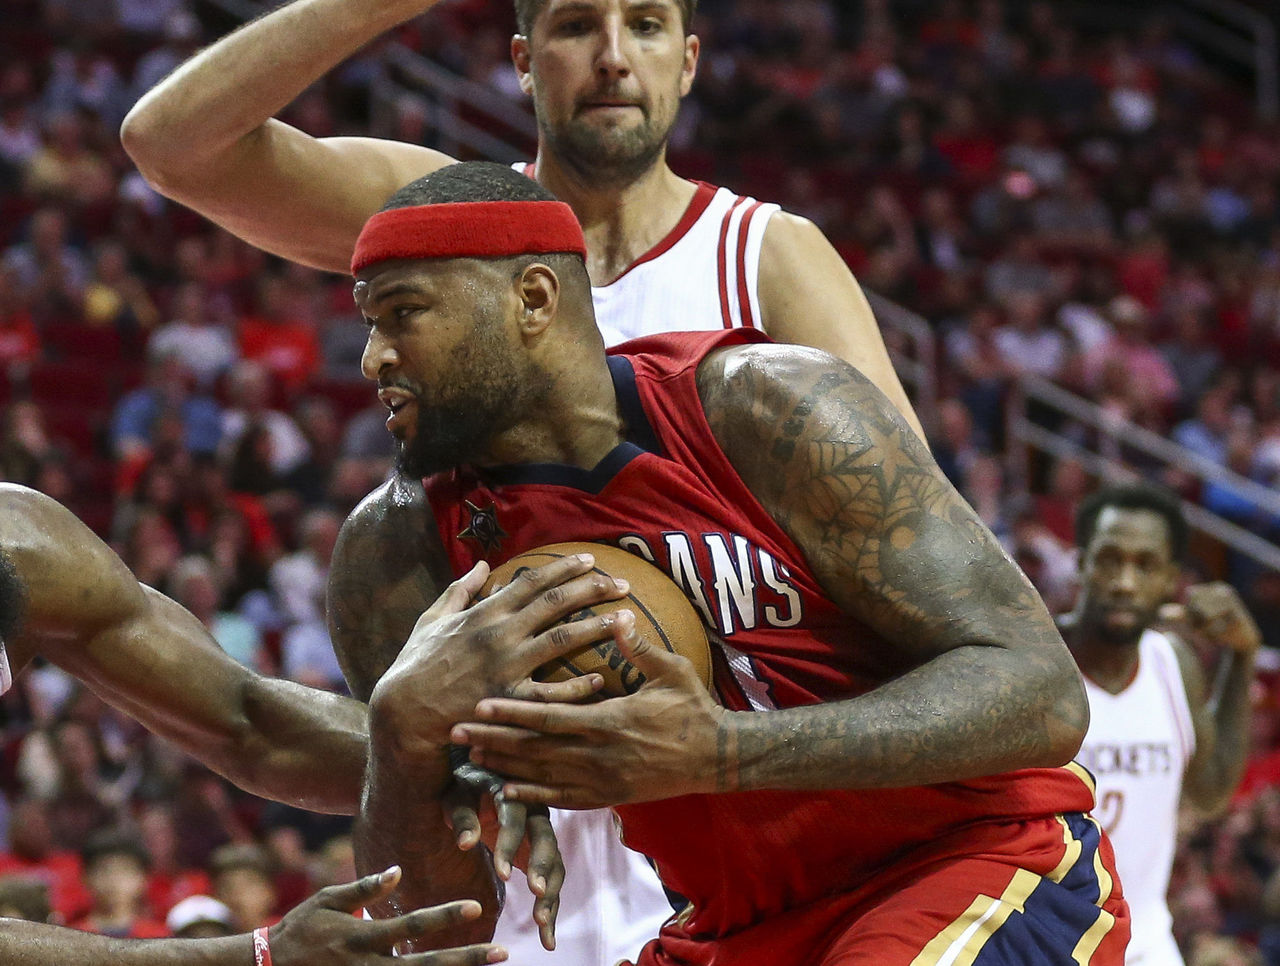 Cropped 2017 03 25t024725z 2093231795 nocid rtrmadp 3 nba new orleans pelicans at houston rockets